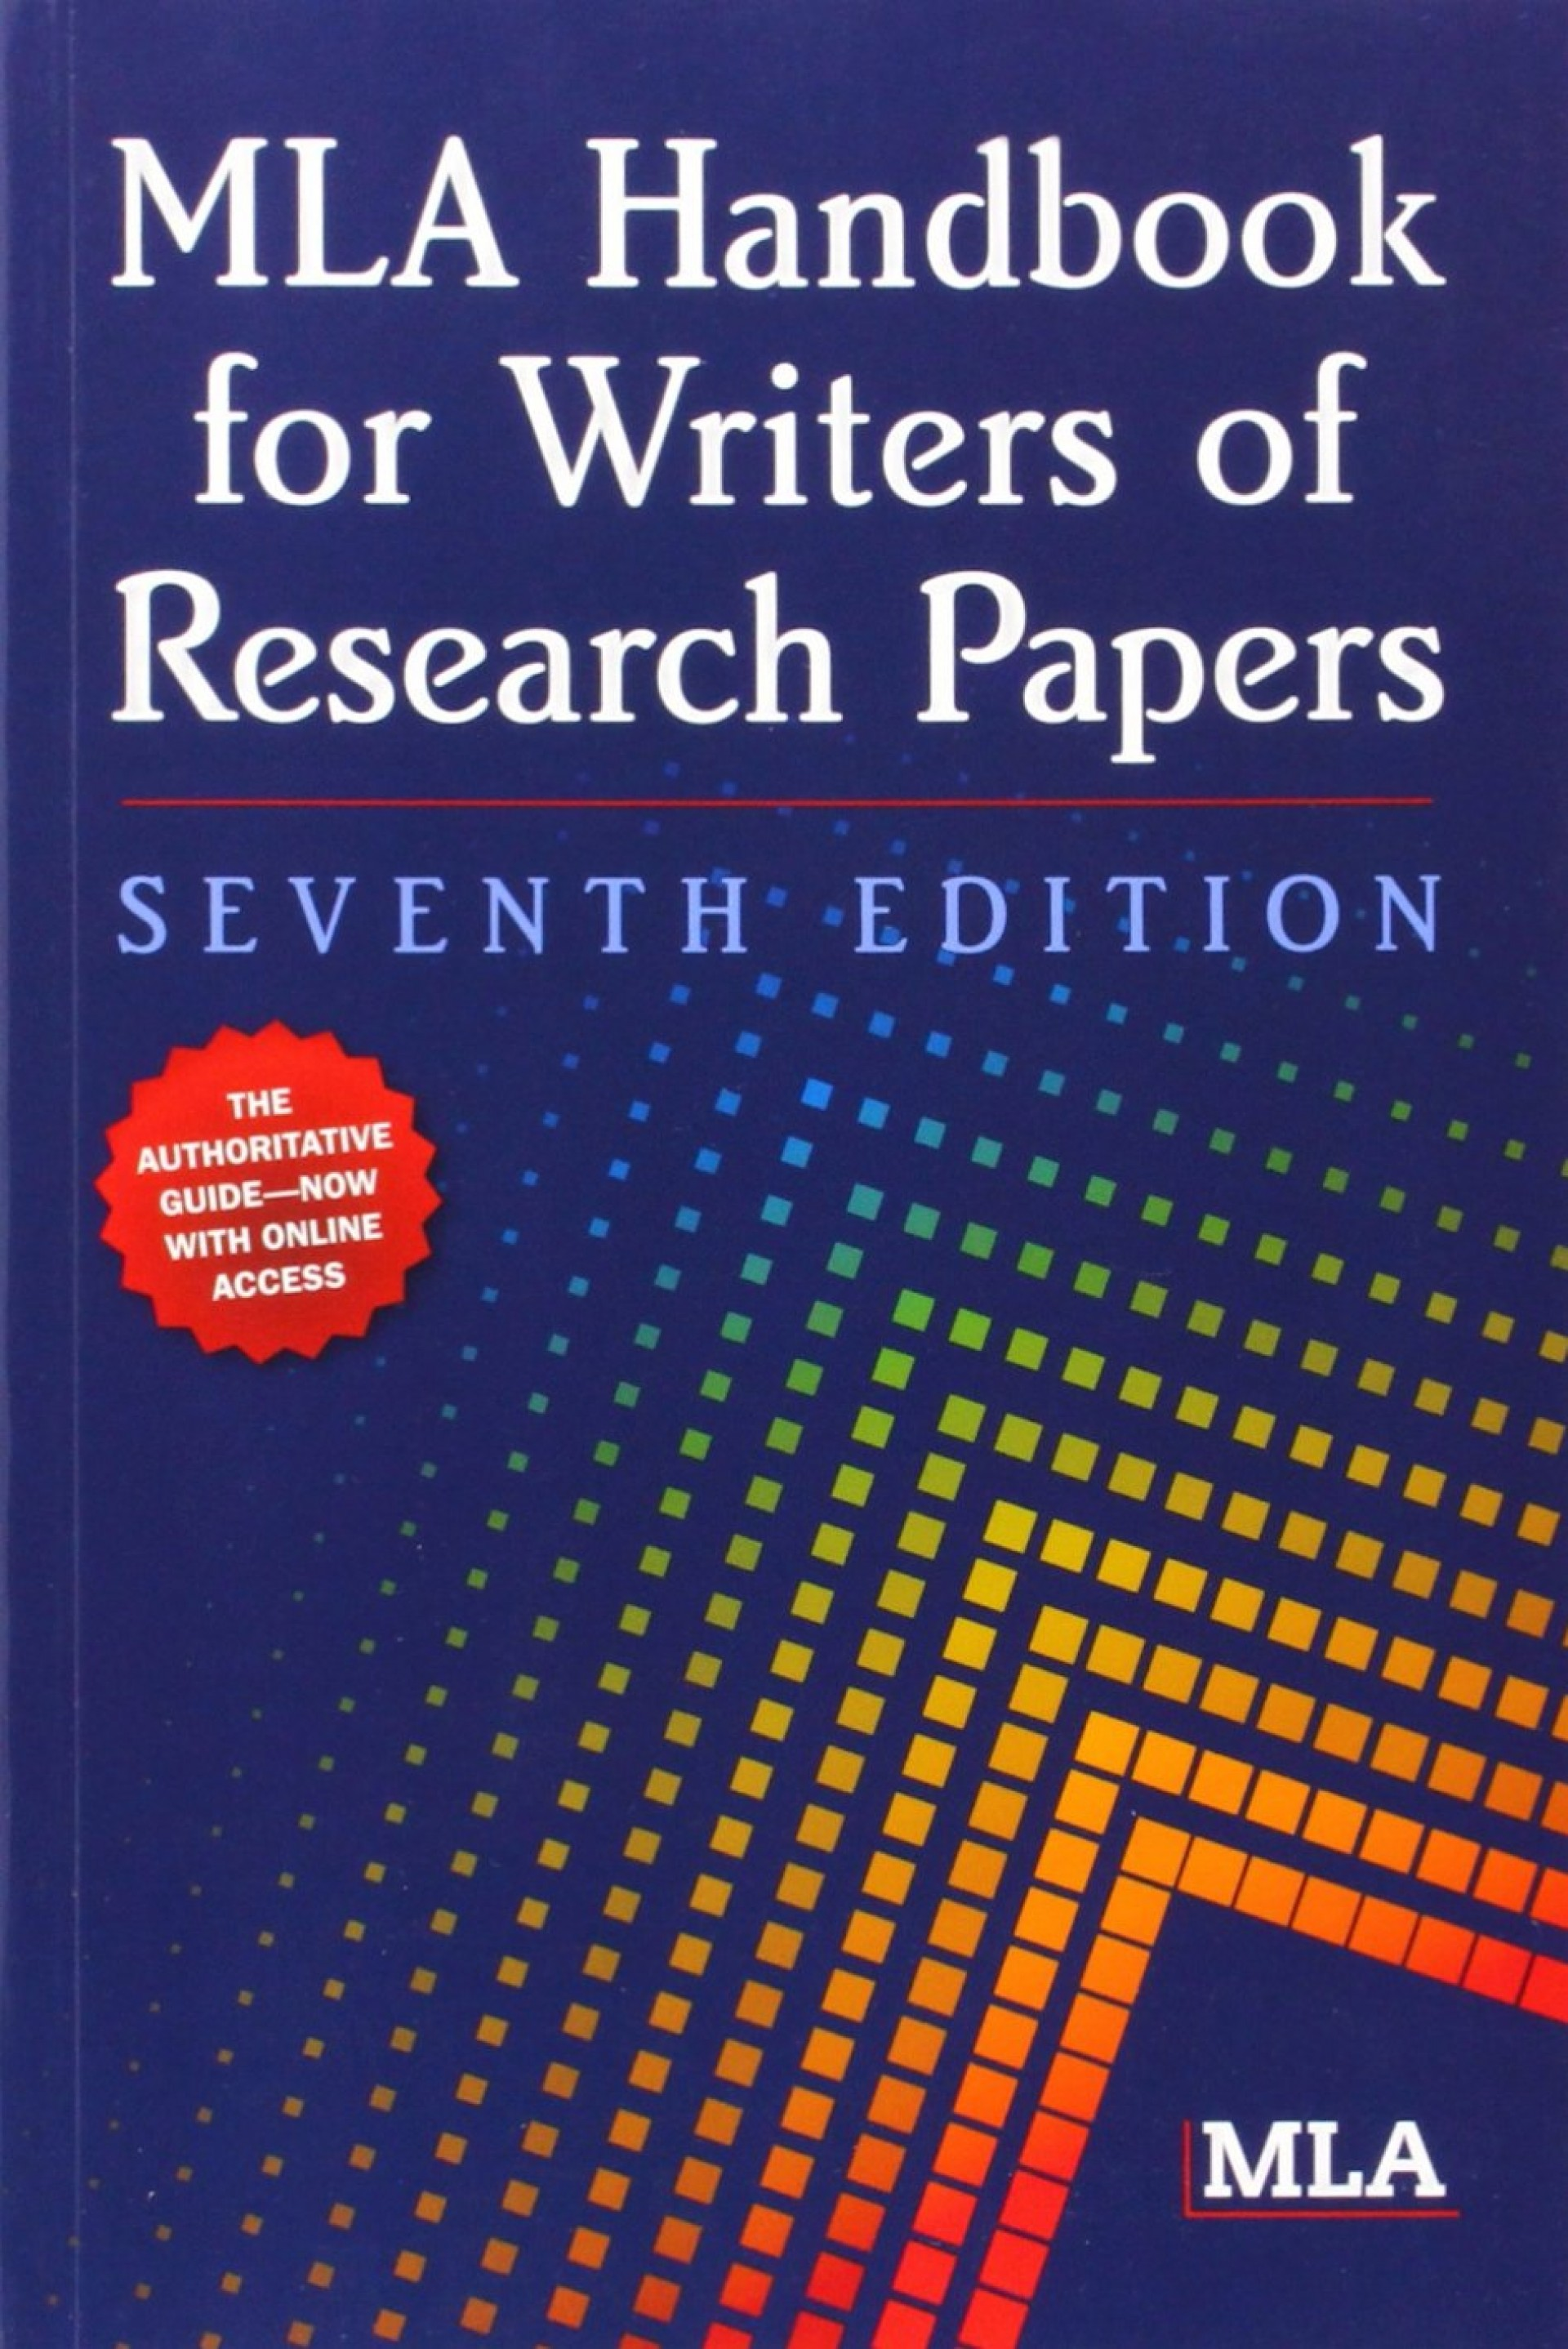 001 Research Paper 71lknvqs6gl Mla Handbook For Writers Of Papers 7th Edition Wondrous Pdf Free Download 1920